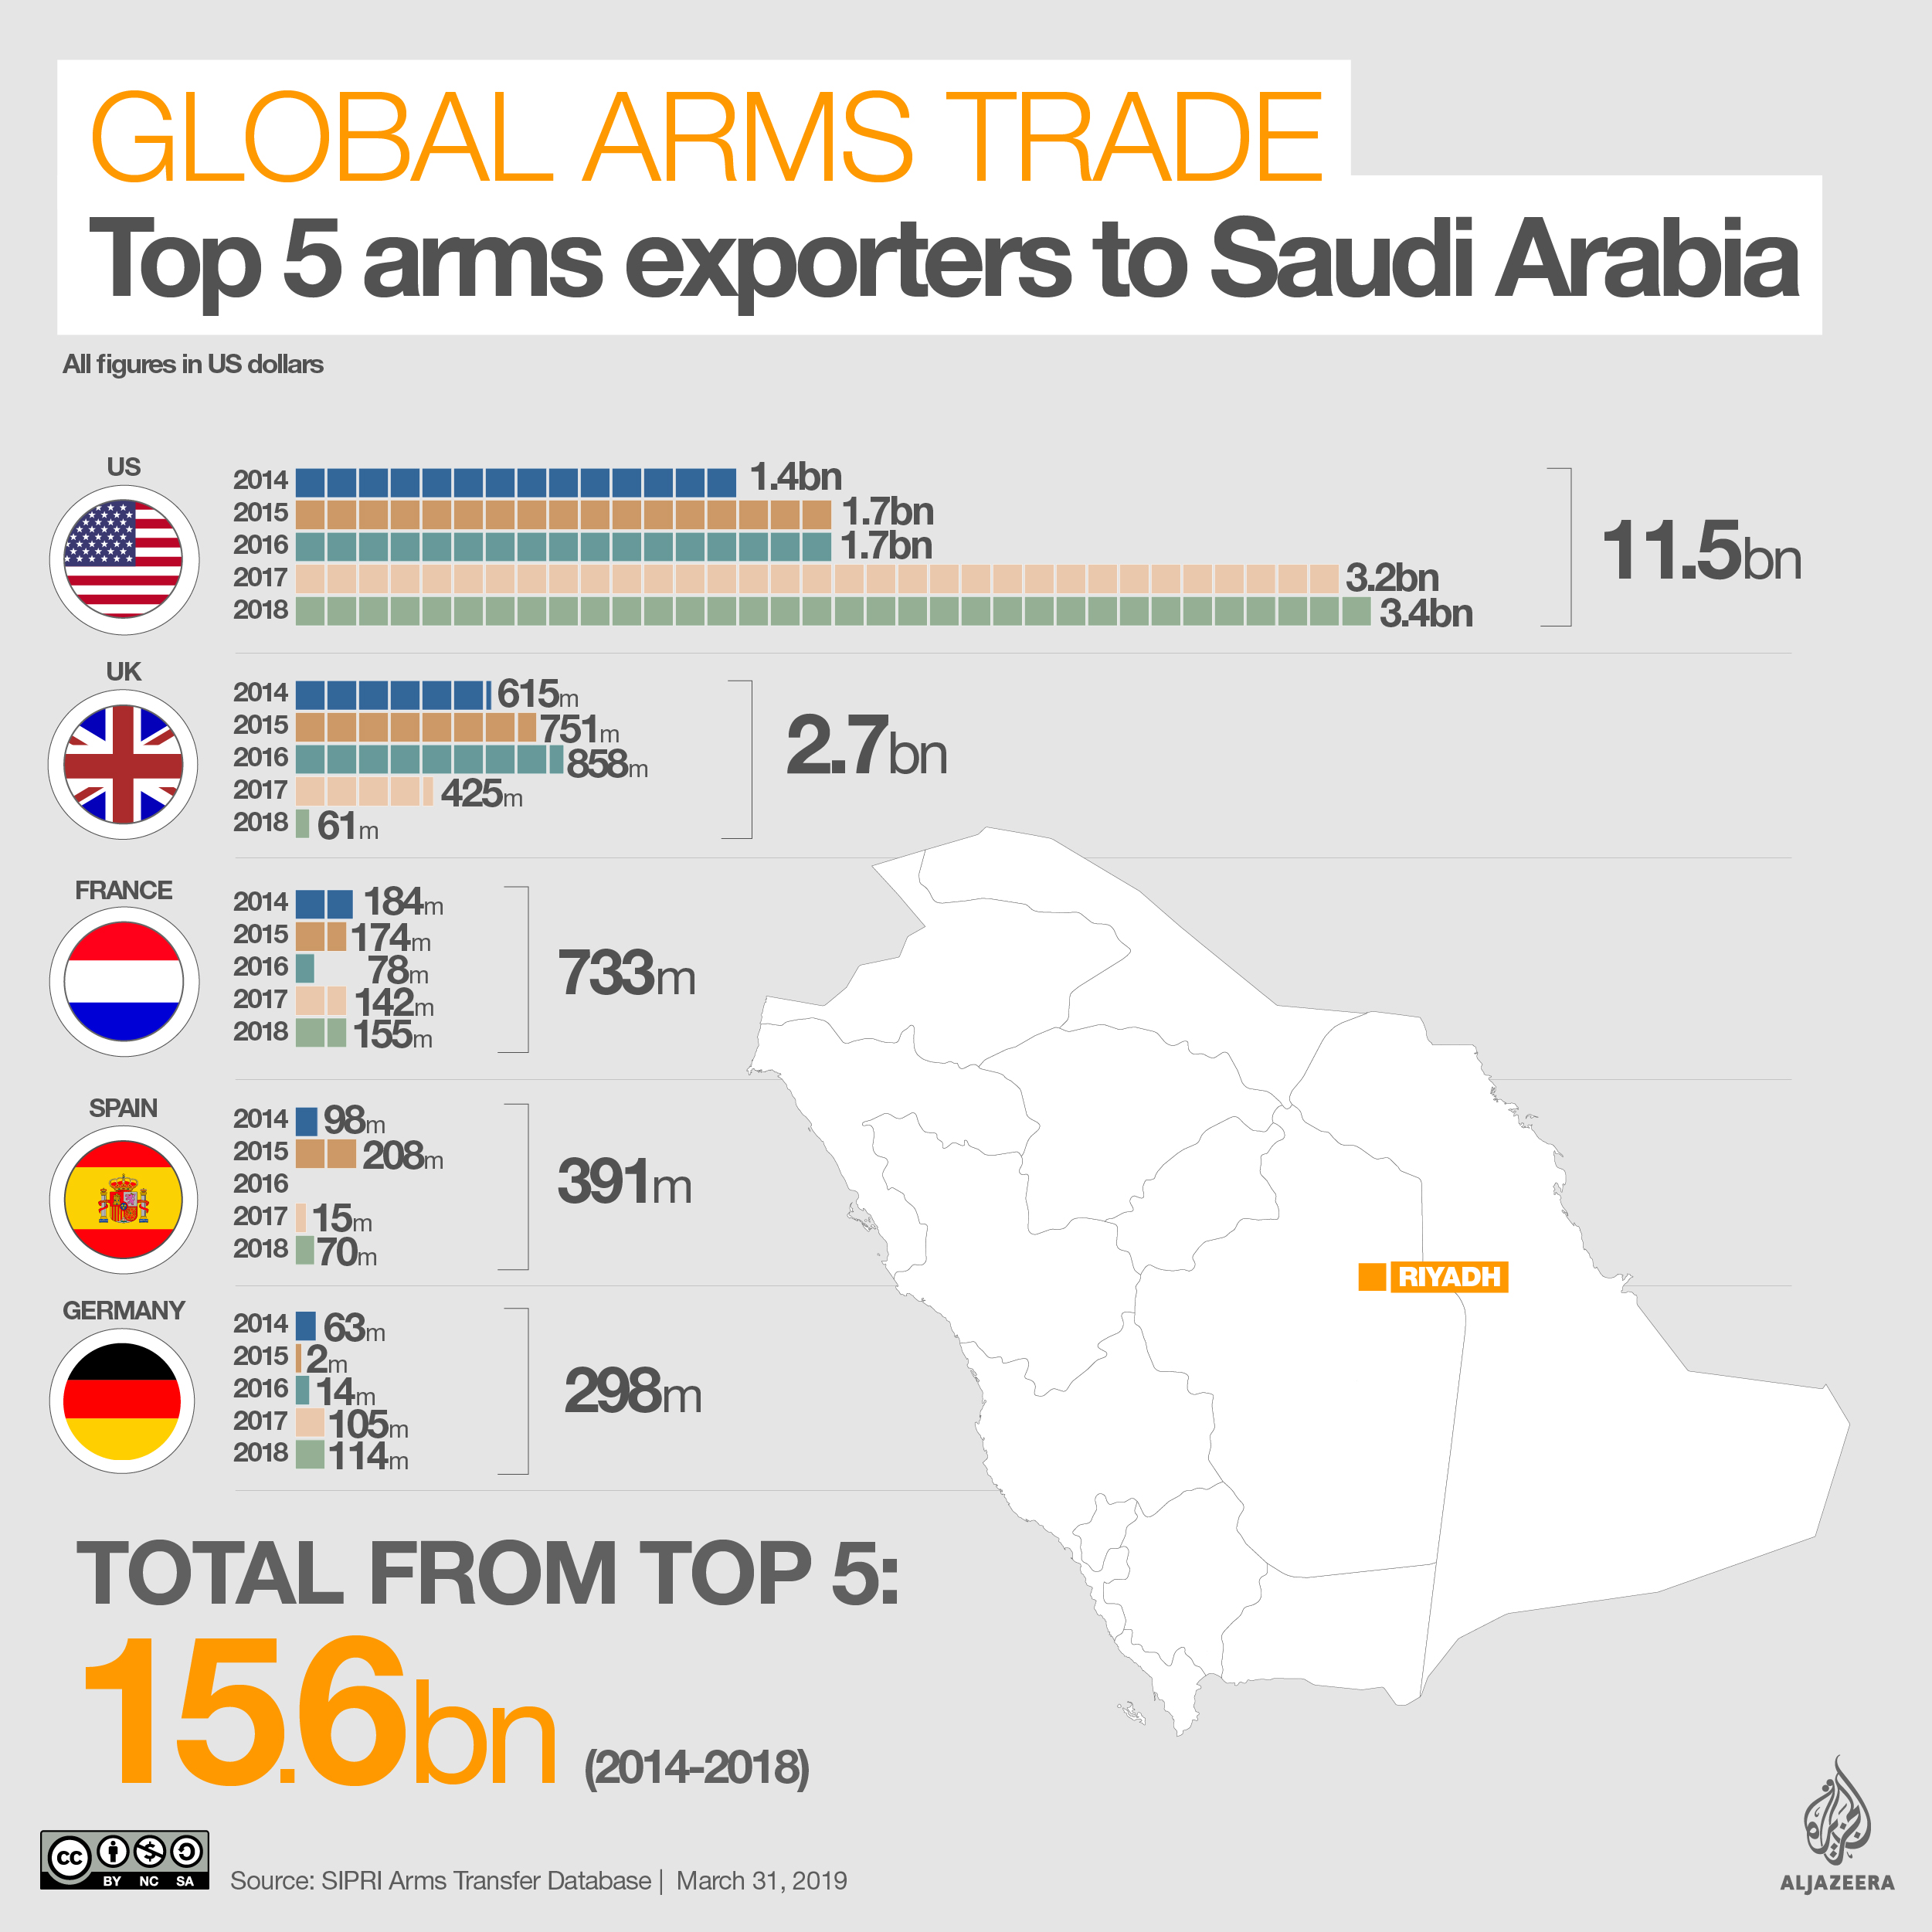 Saudi Arabia: The world's largest arms importer from 2014